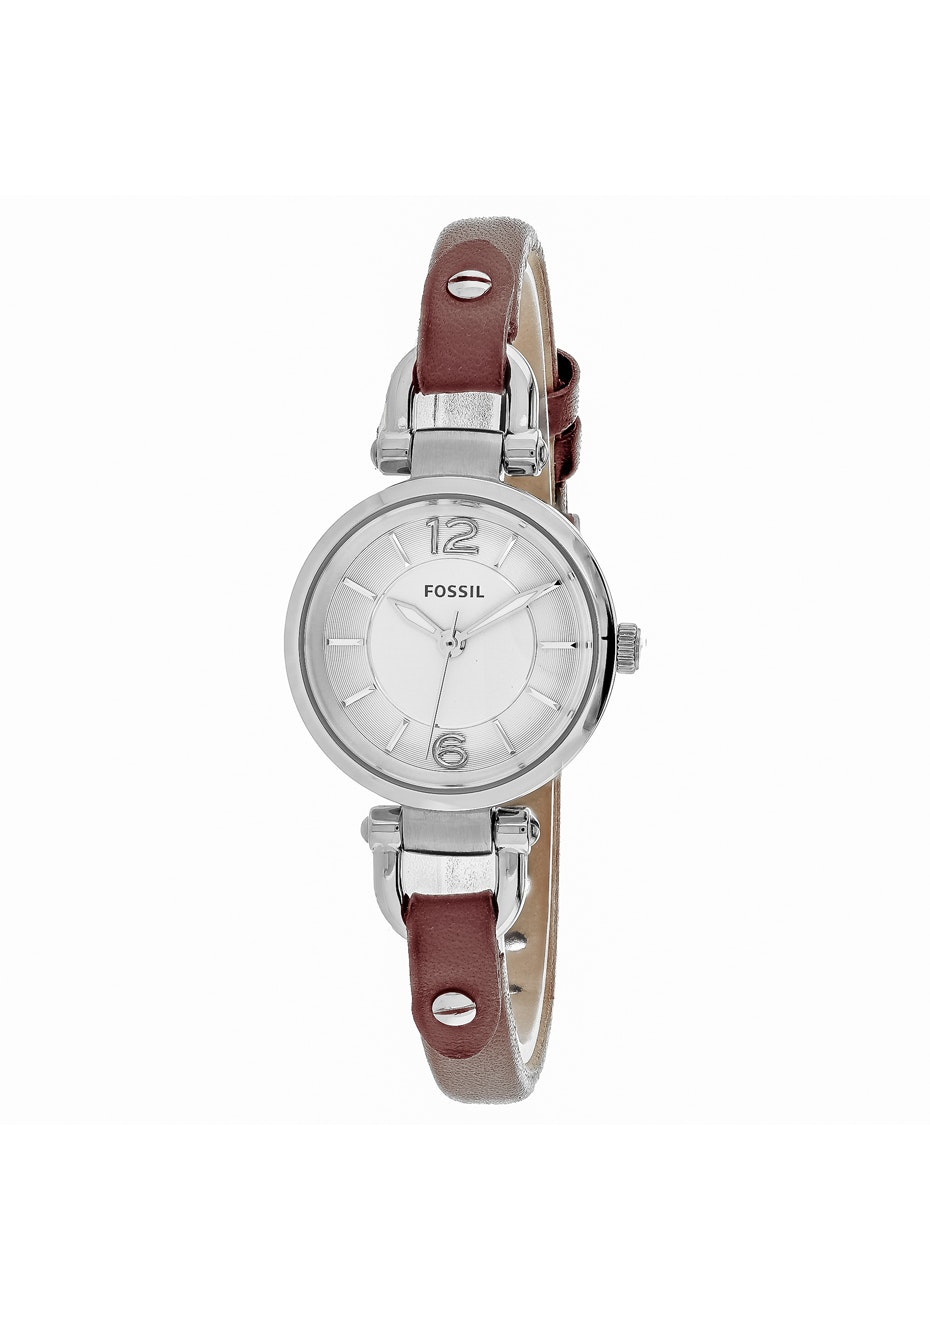 Fossil Women's Georgia - Silver/Brown